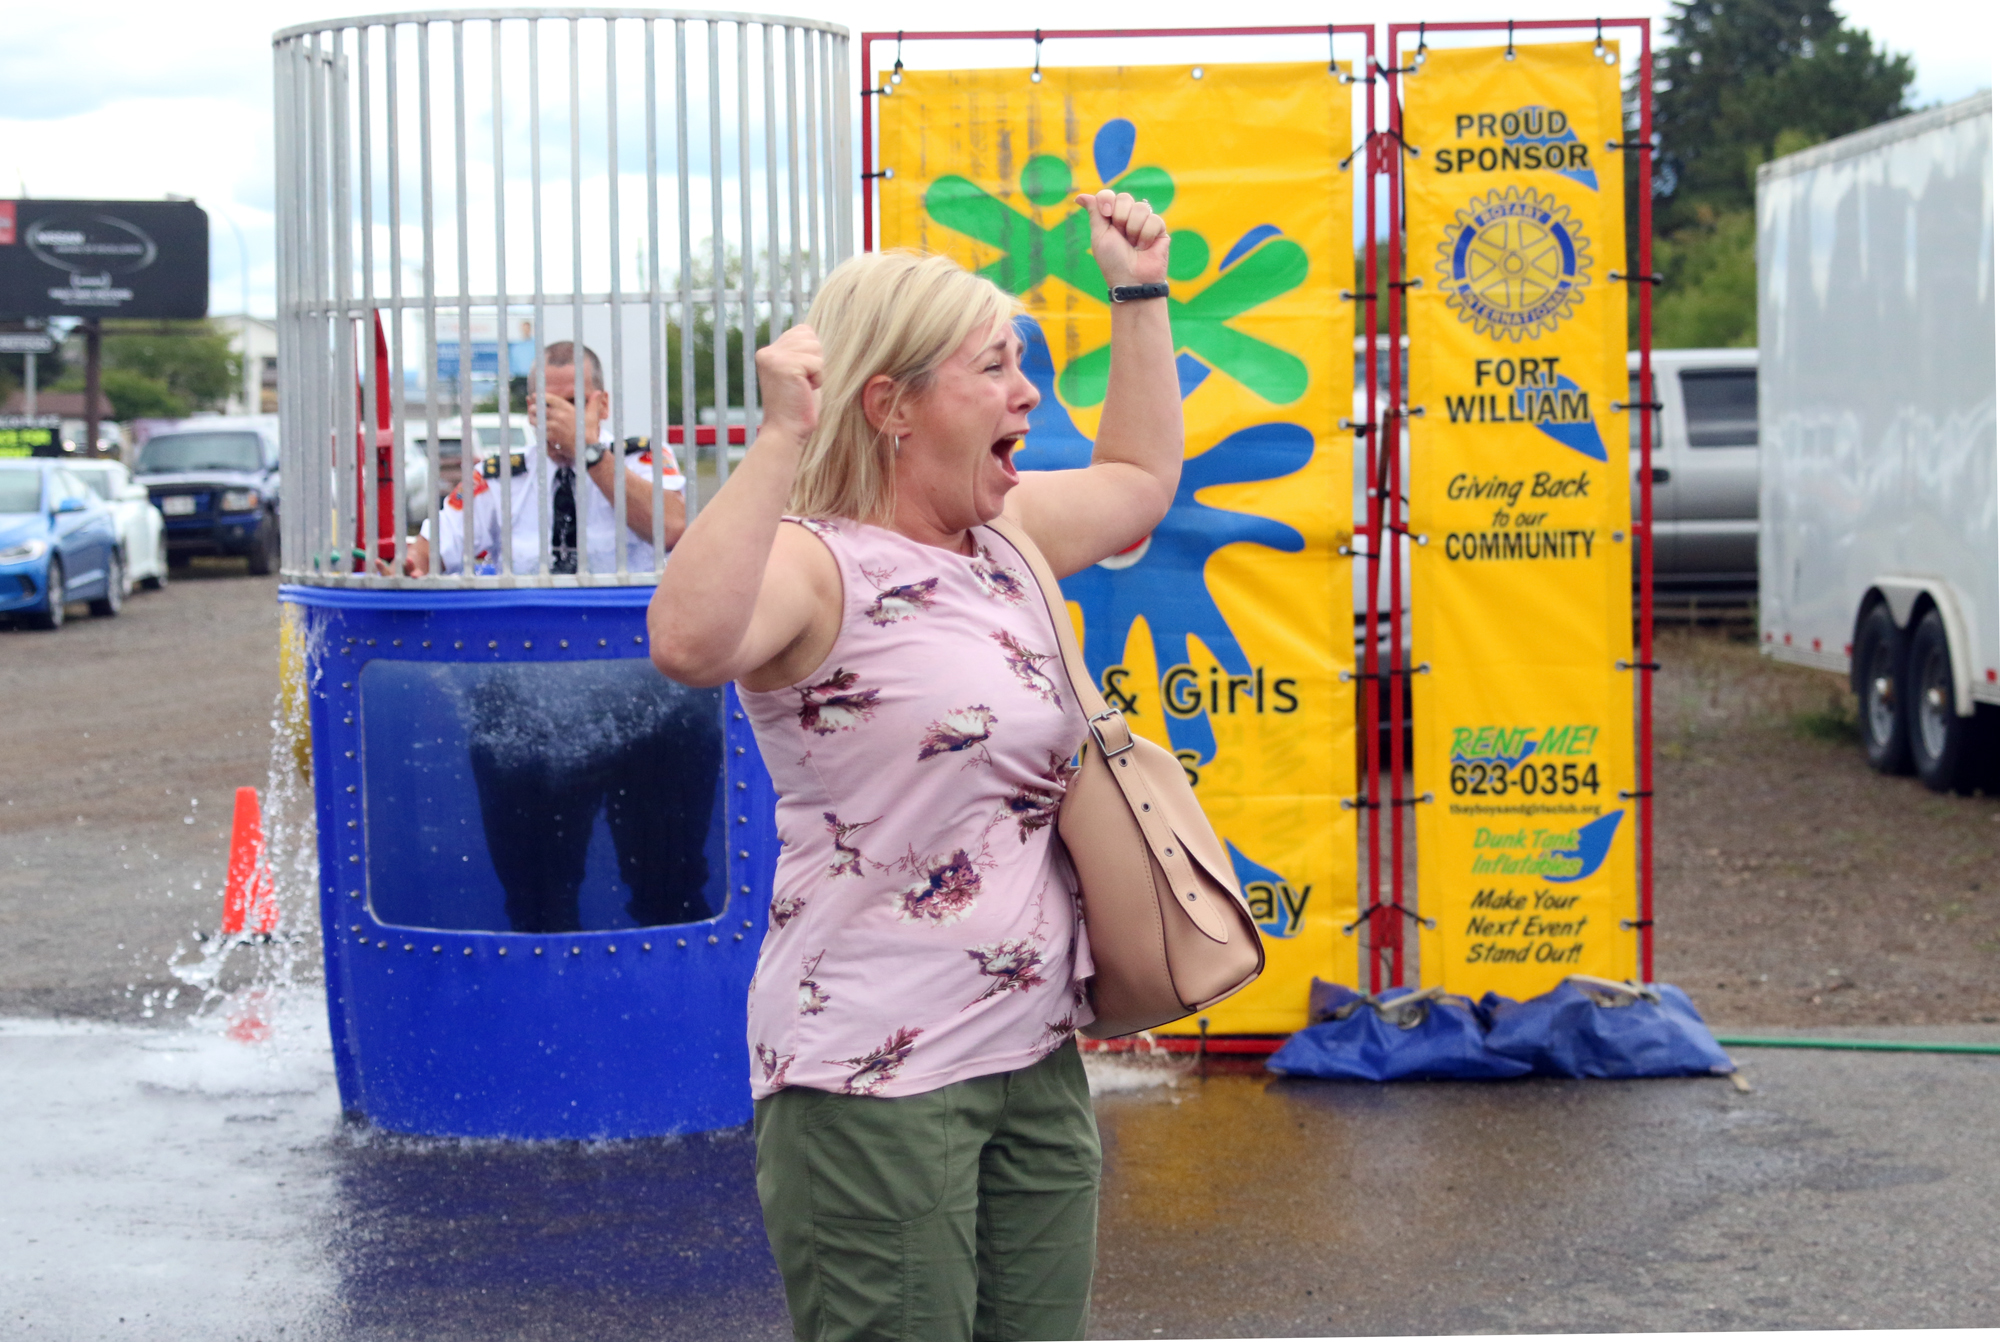 Police take the plunge in support of Special Olympics (11 photos)